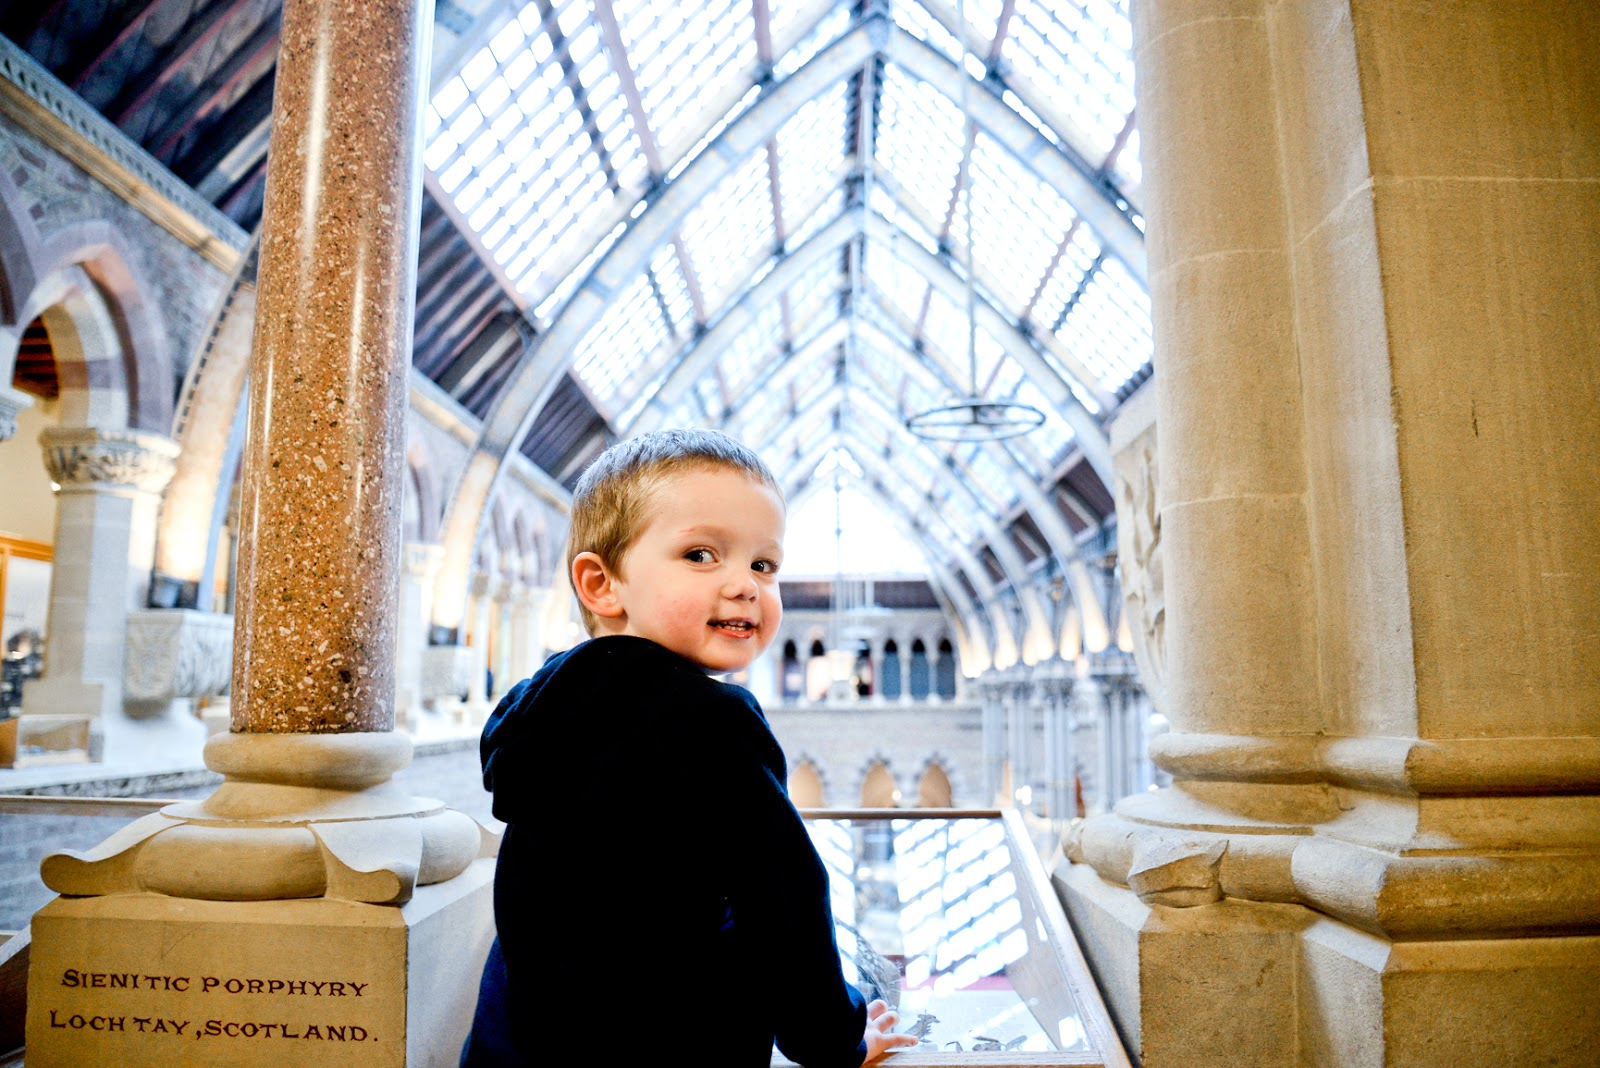 oxford museum, what to do during half term, local museums, local free indoor activities for kids, natural history museum, pitts river museum,